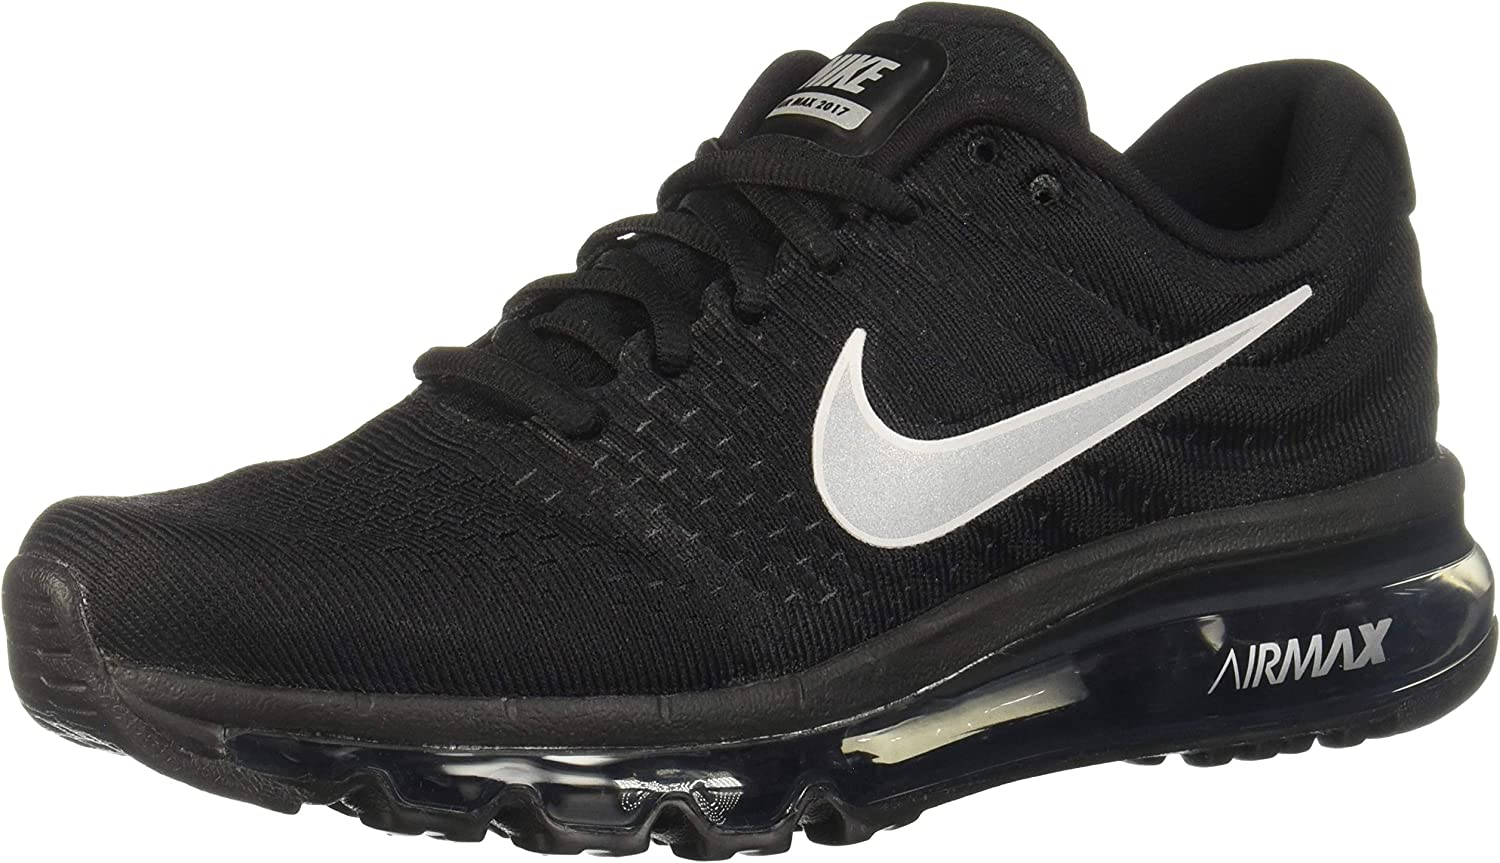 Nike Womens Air Max 2017 Running Shoes Black White Anthracite 849560-001 Size 6